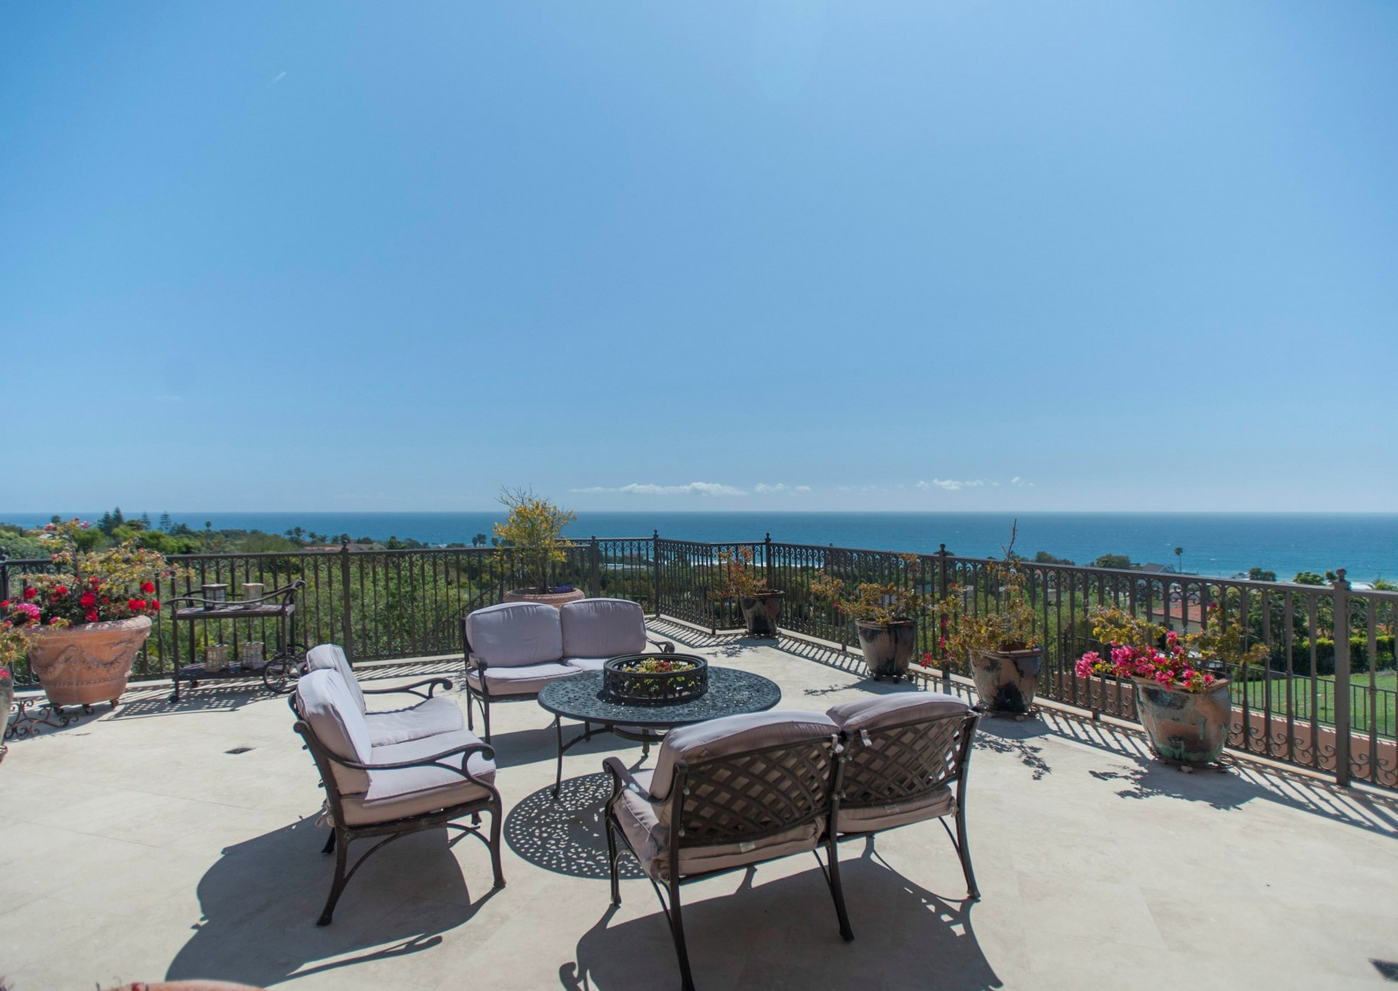 Own this splendid tuscan beaut in malibu for - Tuscany sotheby s international realty ...